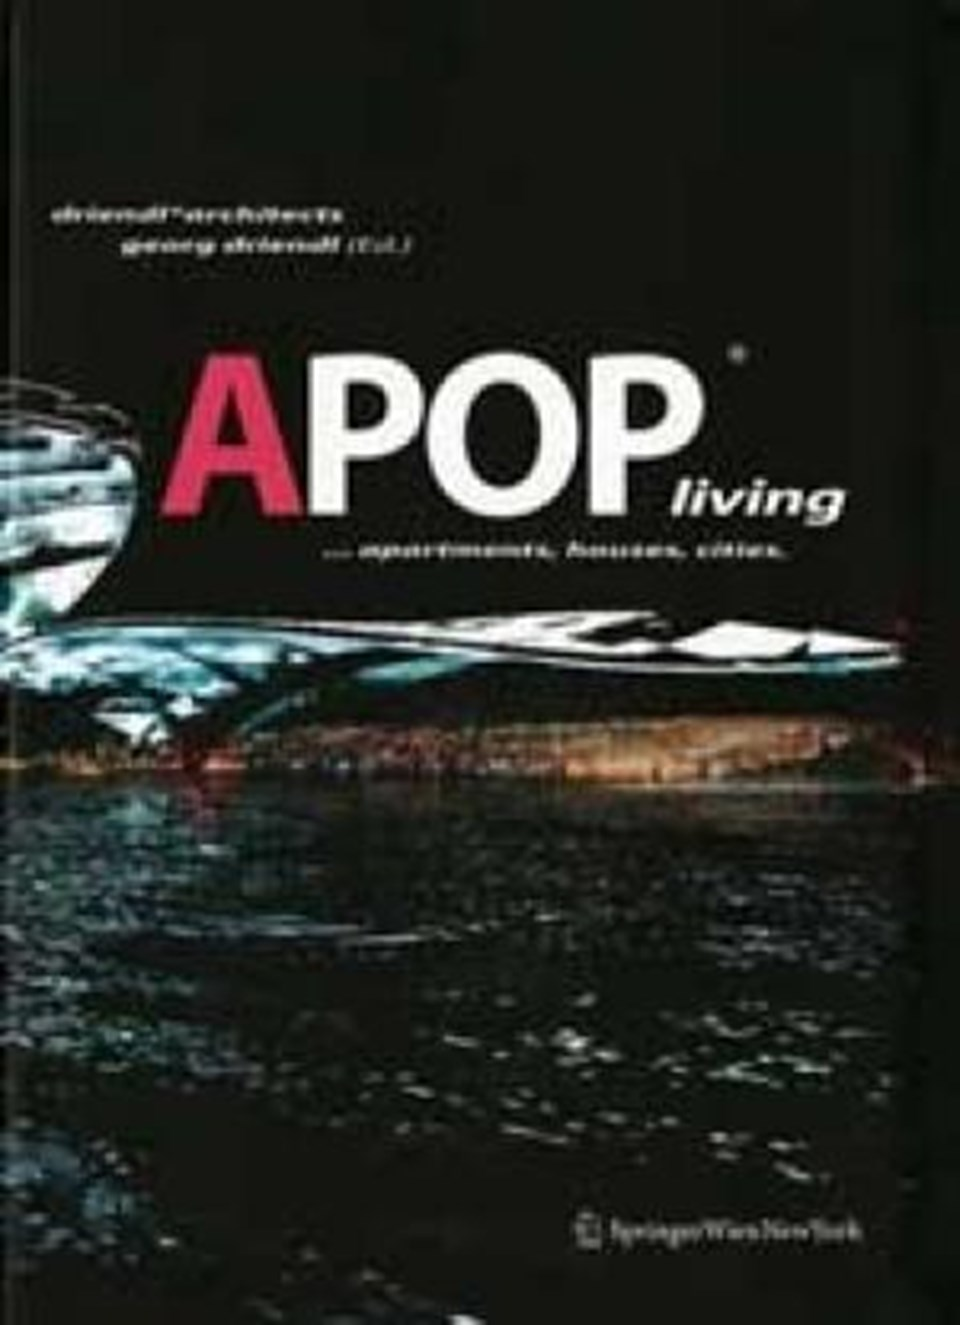 APOPliving - apartments, houses, cities